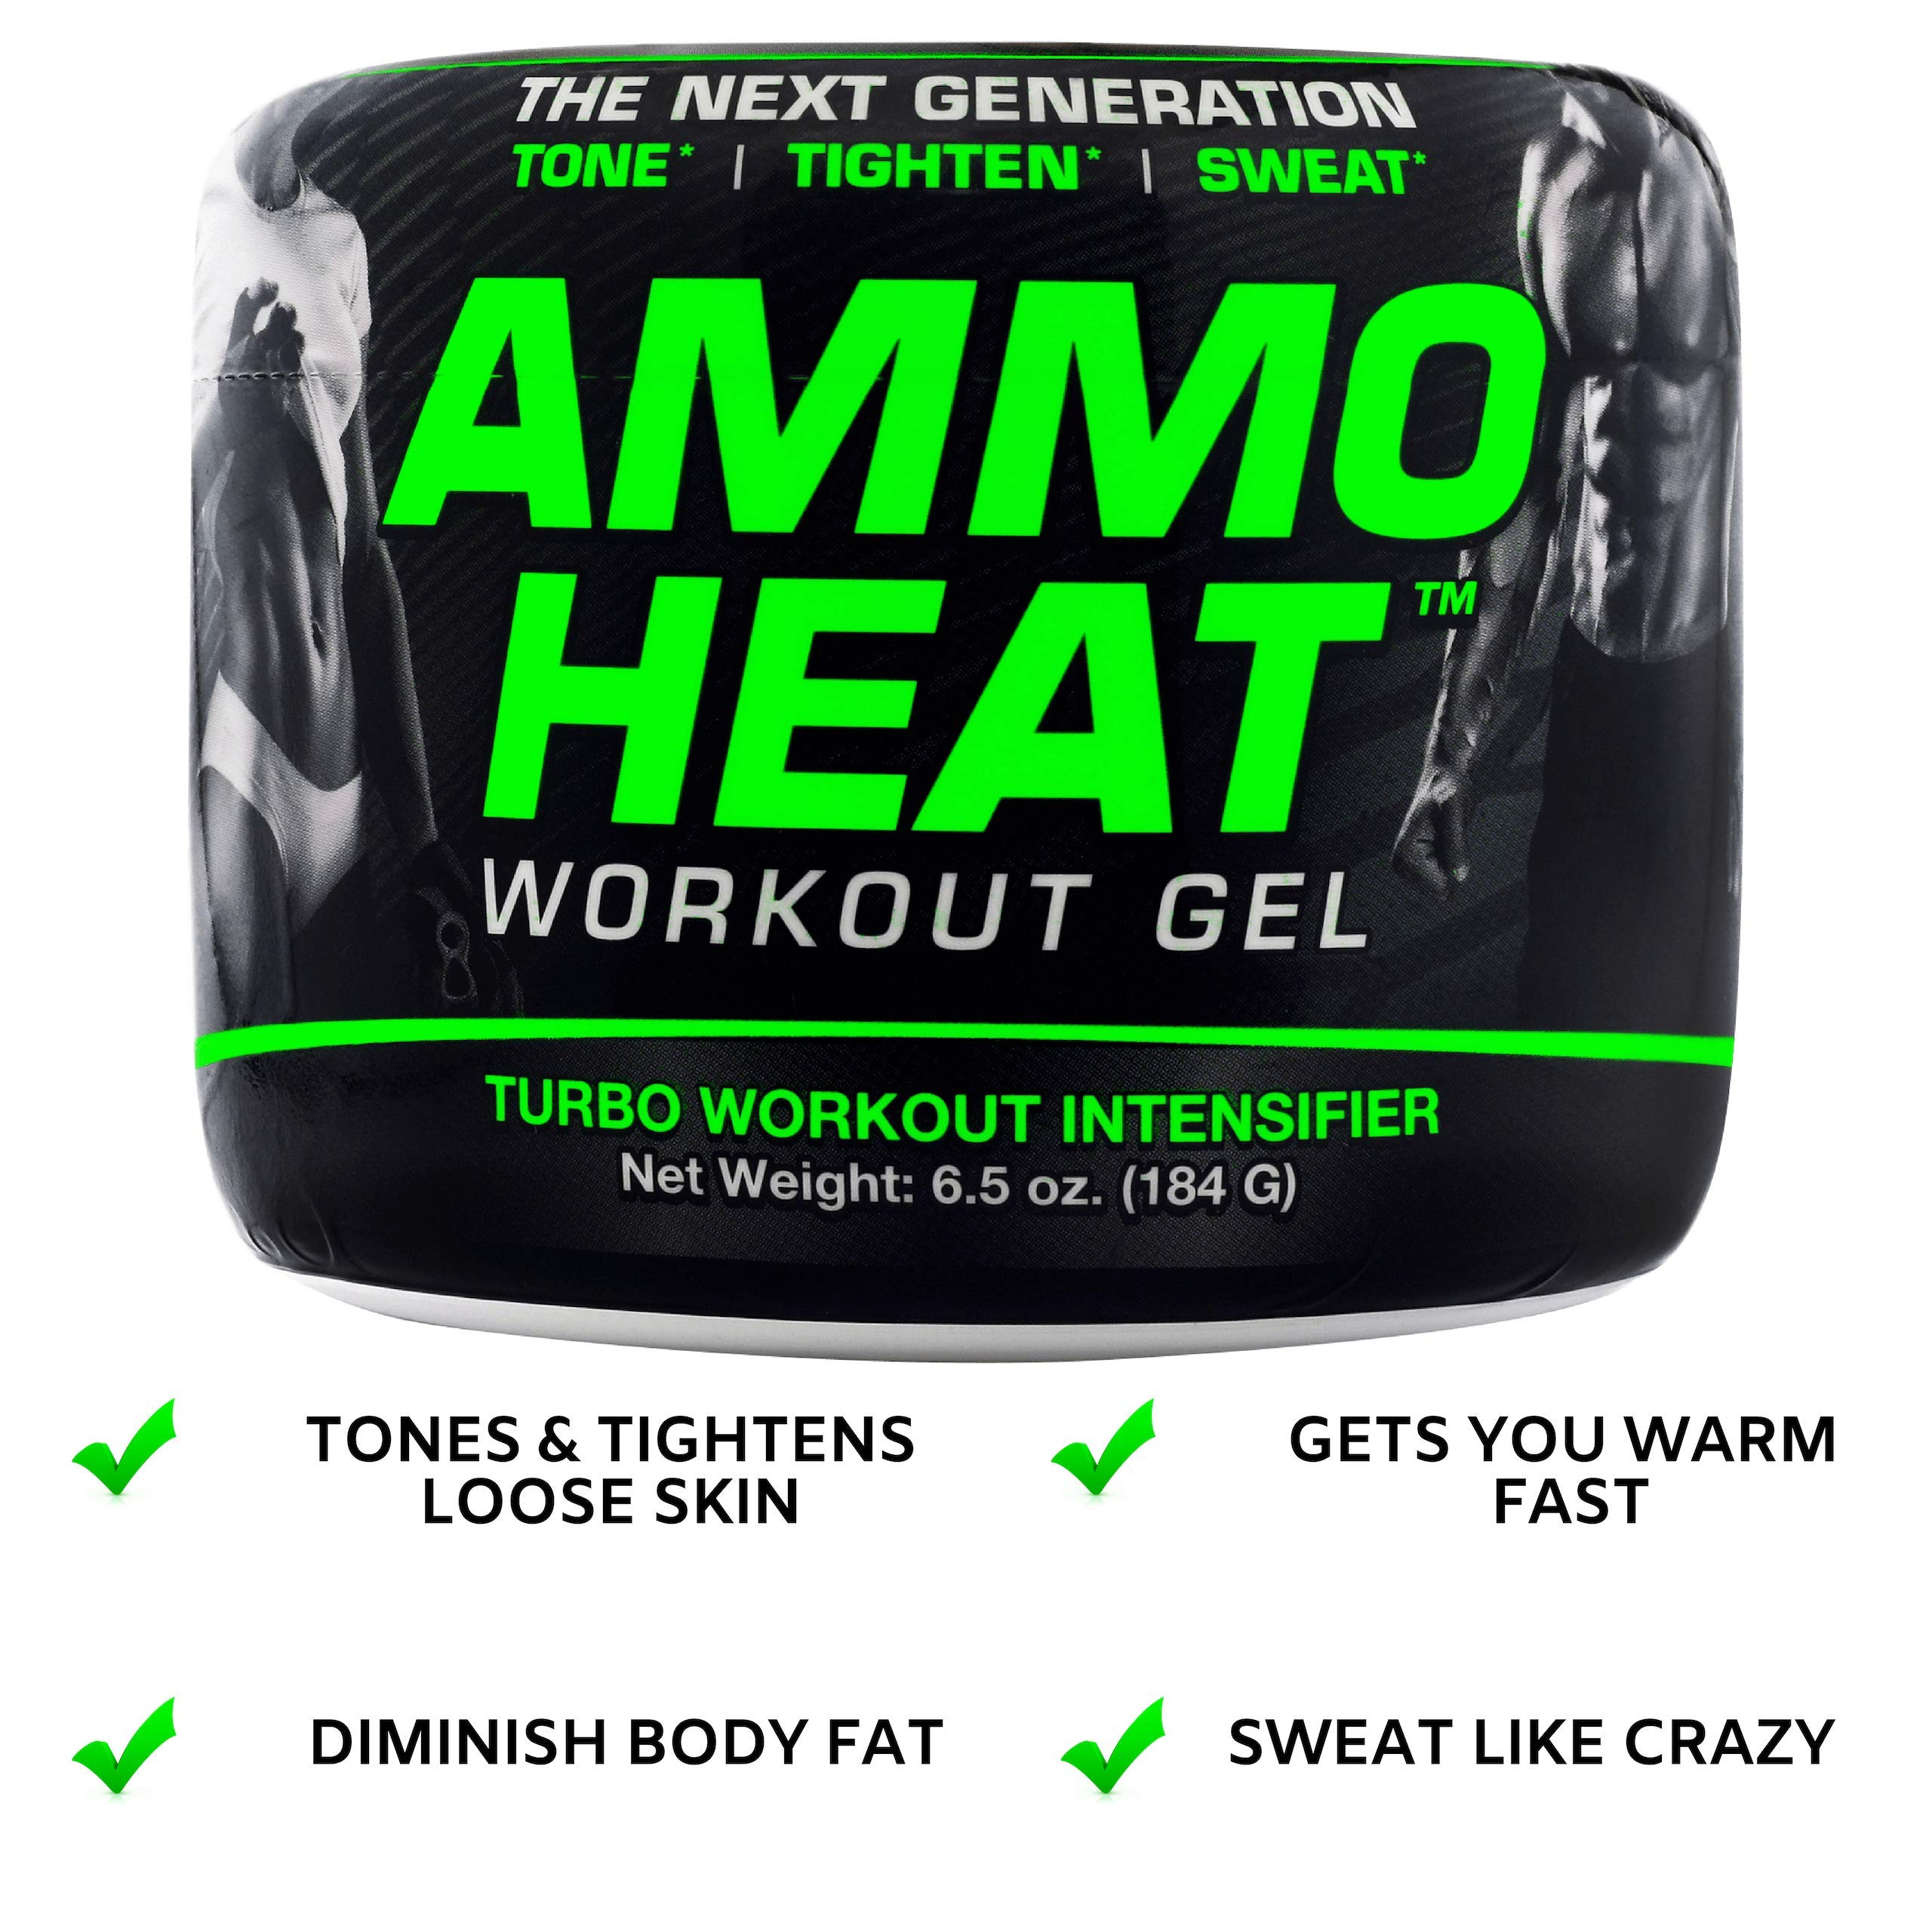 AMMOHEAT 6.5 oz. | Thermogenic Fat Burner and Skin Tightening Topical Gel | Sweat and Weight Loss Intensifier - Tone, Tighten, and Sweat | Made with ShapePerfection and Collagen